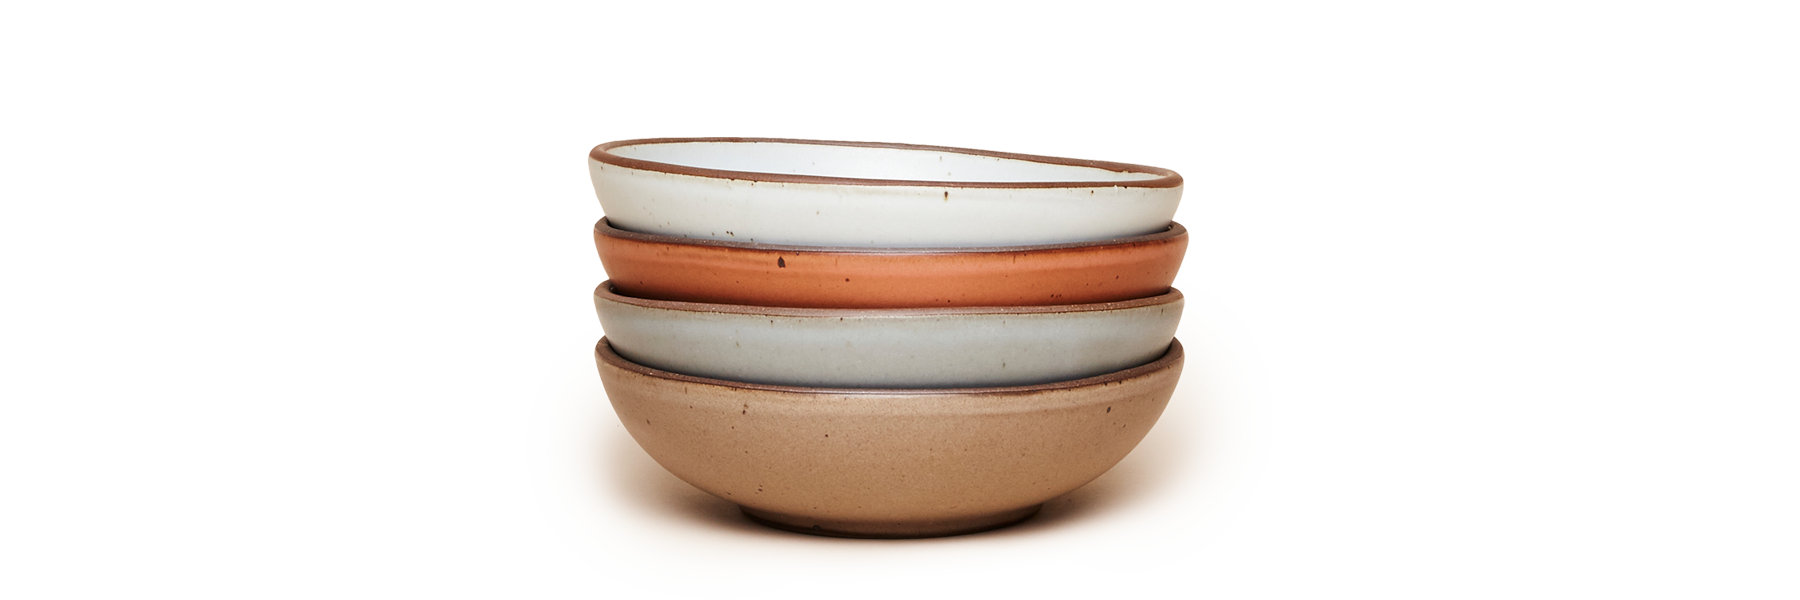 A stack of East Fork Everyday Bowls in a variety of colors